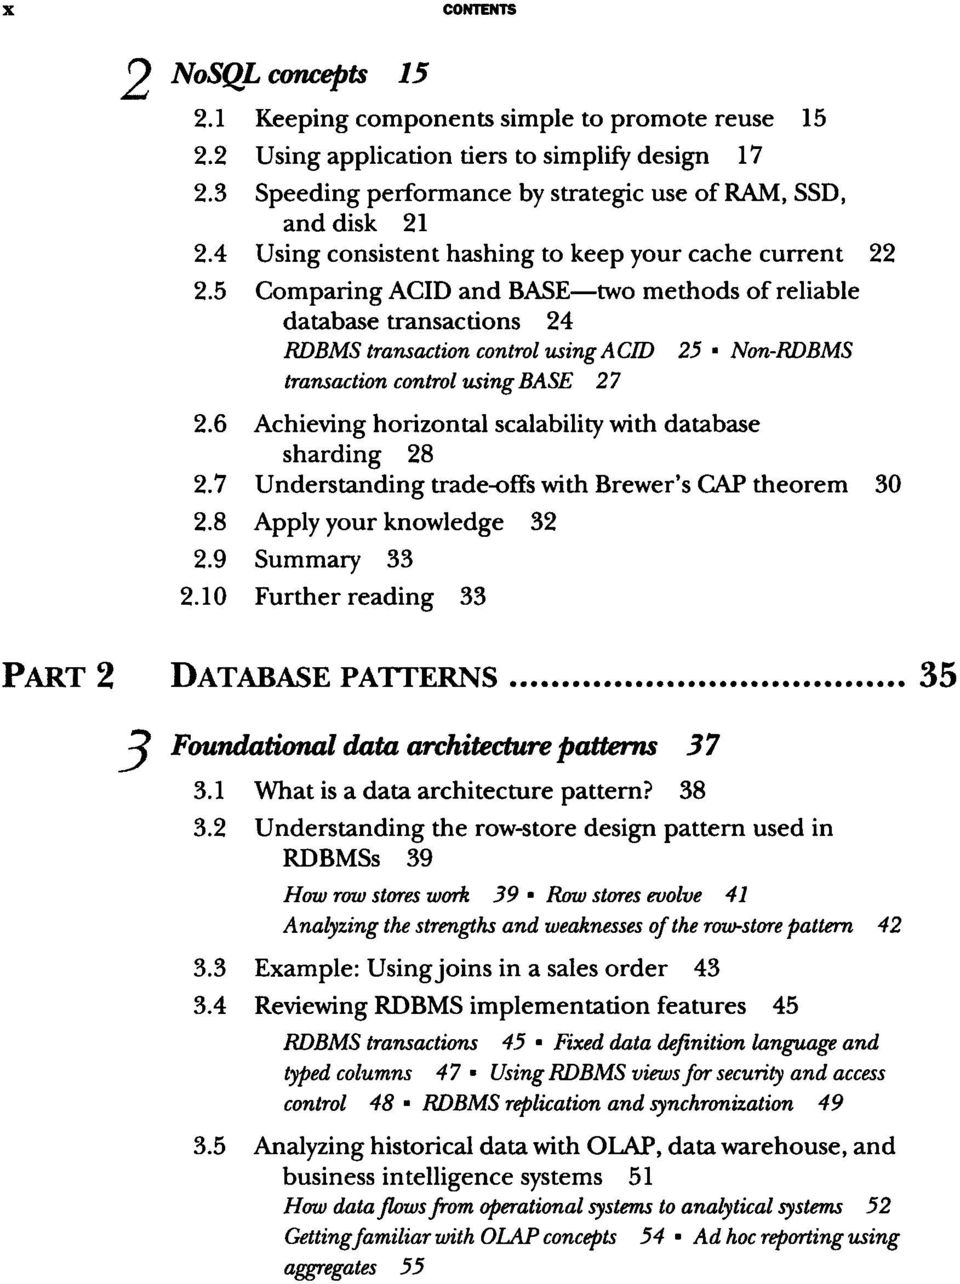 5 Comparing database transactions 24 cache current 22 ACID and BASE two methods of reliable RDBMS transaction control using ACID 25 Non-RDBMS transaction control using BASE 27 2.